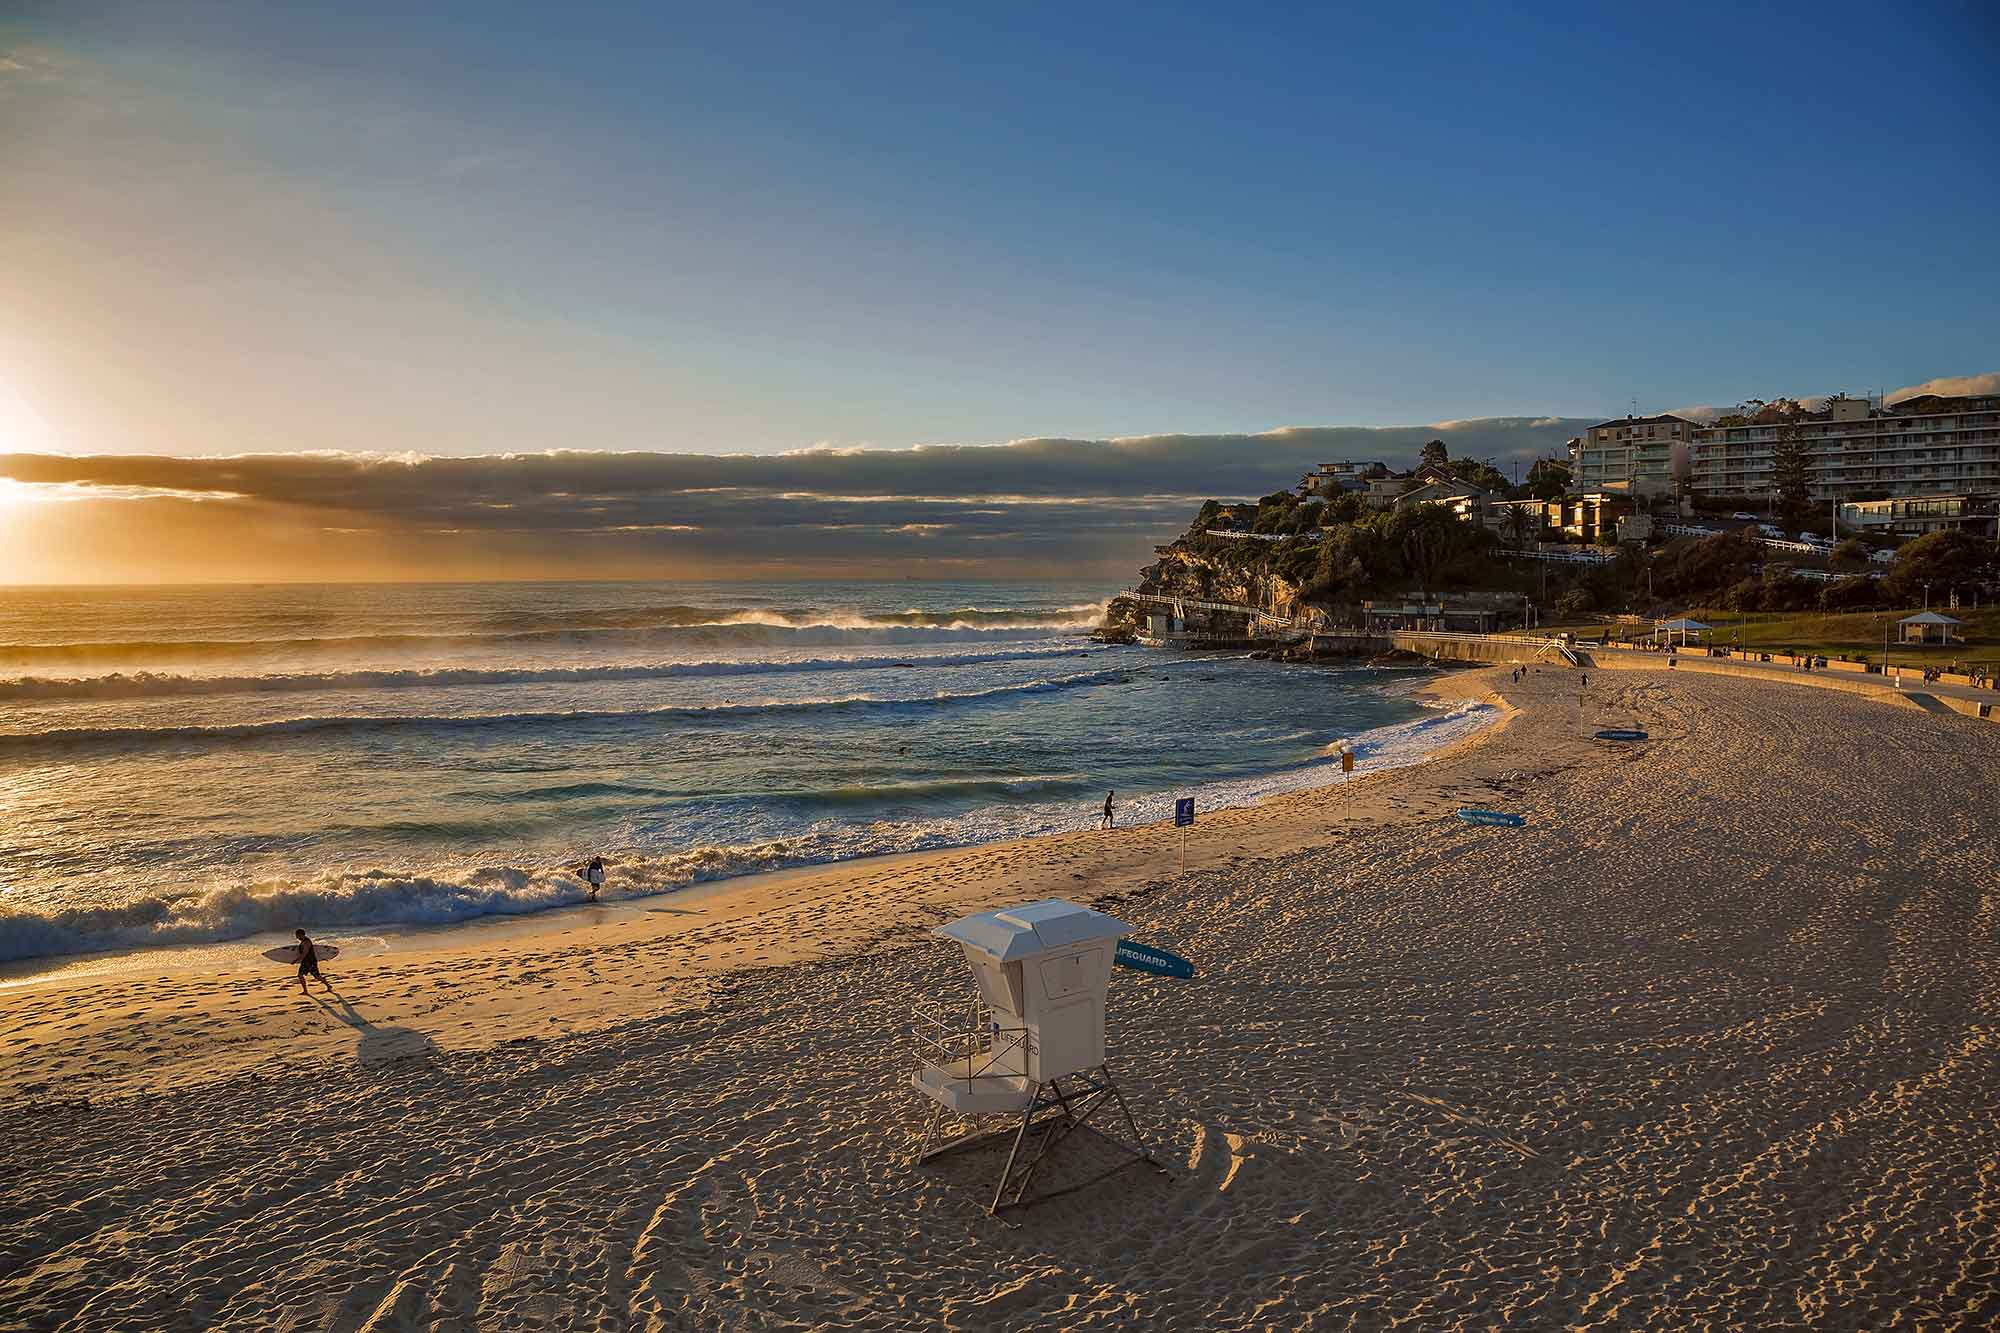 Sydney Coastal Walk: Sunrise at Bronte Beach. © Ulli Maier & Nisa Maier